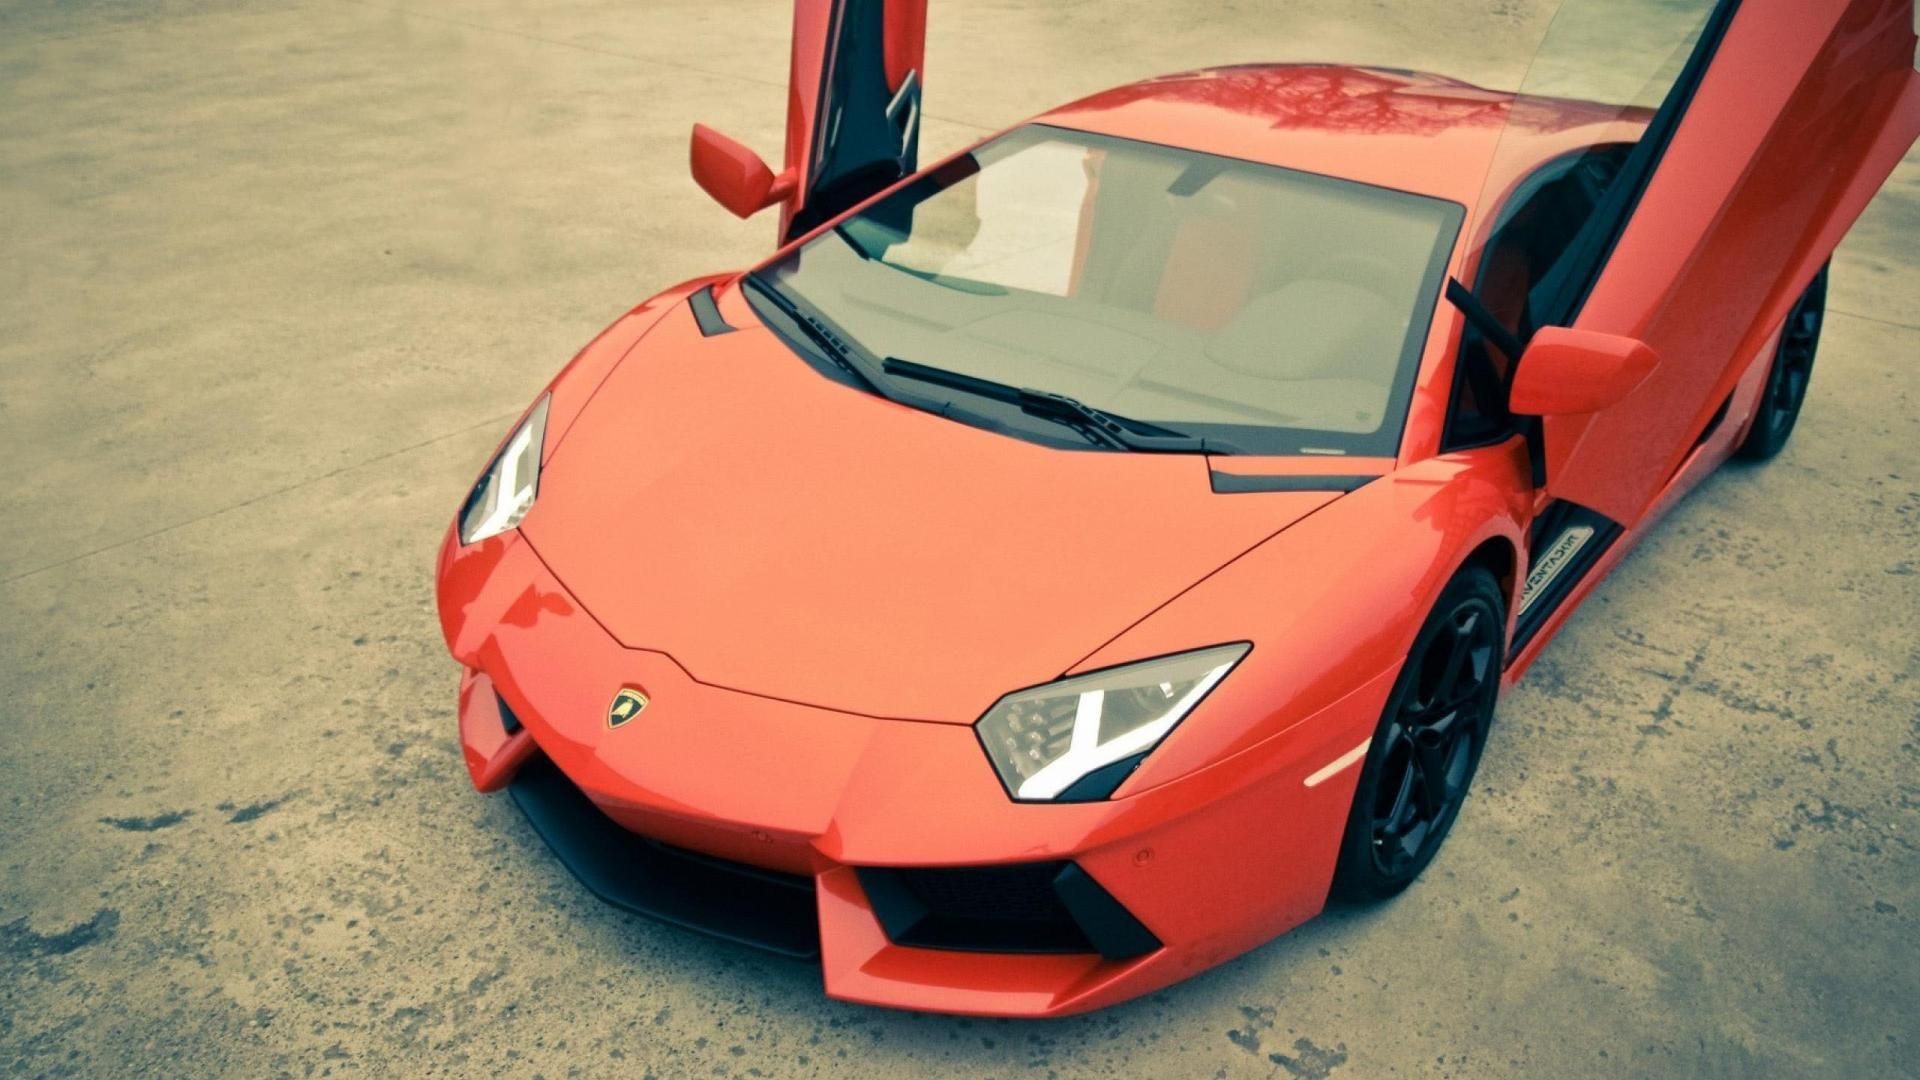 lamborghini aventador new sports cars hd wallpaper